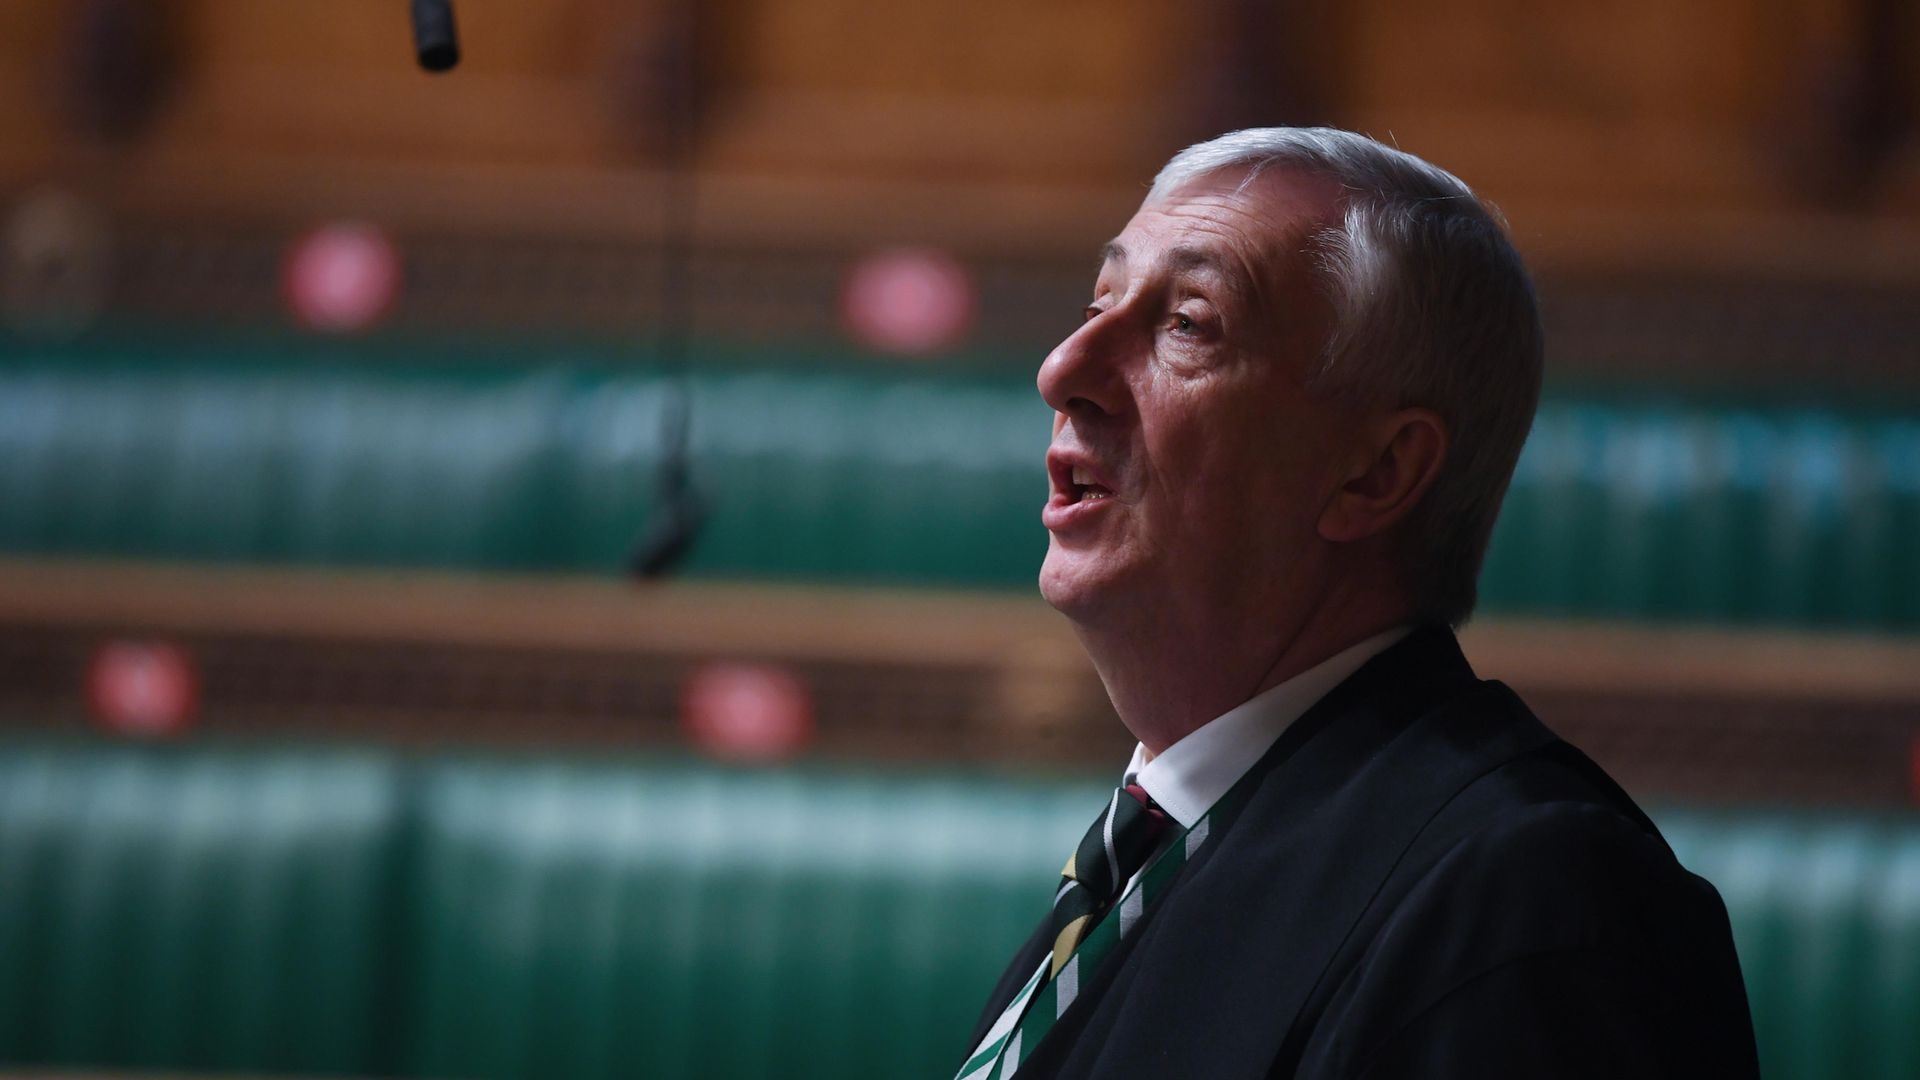 Sir Lindsay Hoyle in the House of Commons - Credit: Jessica Taylor